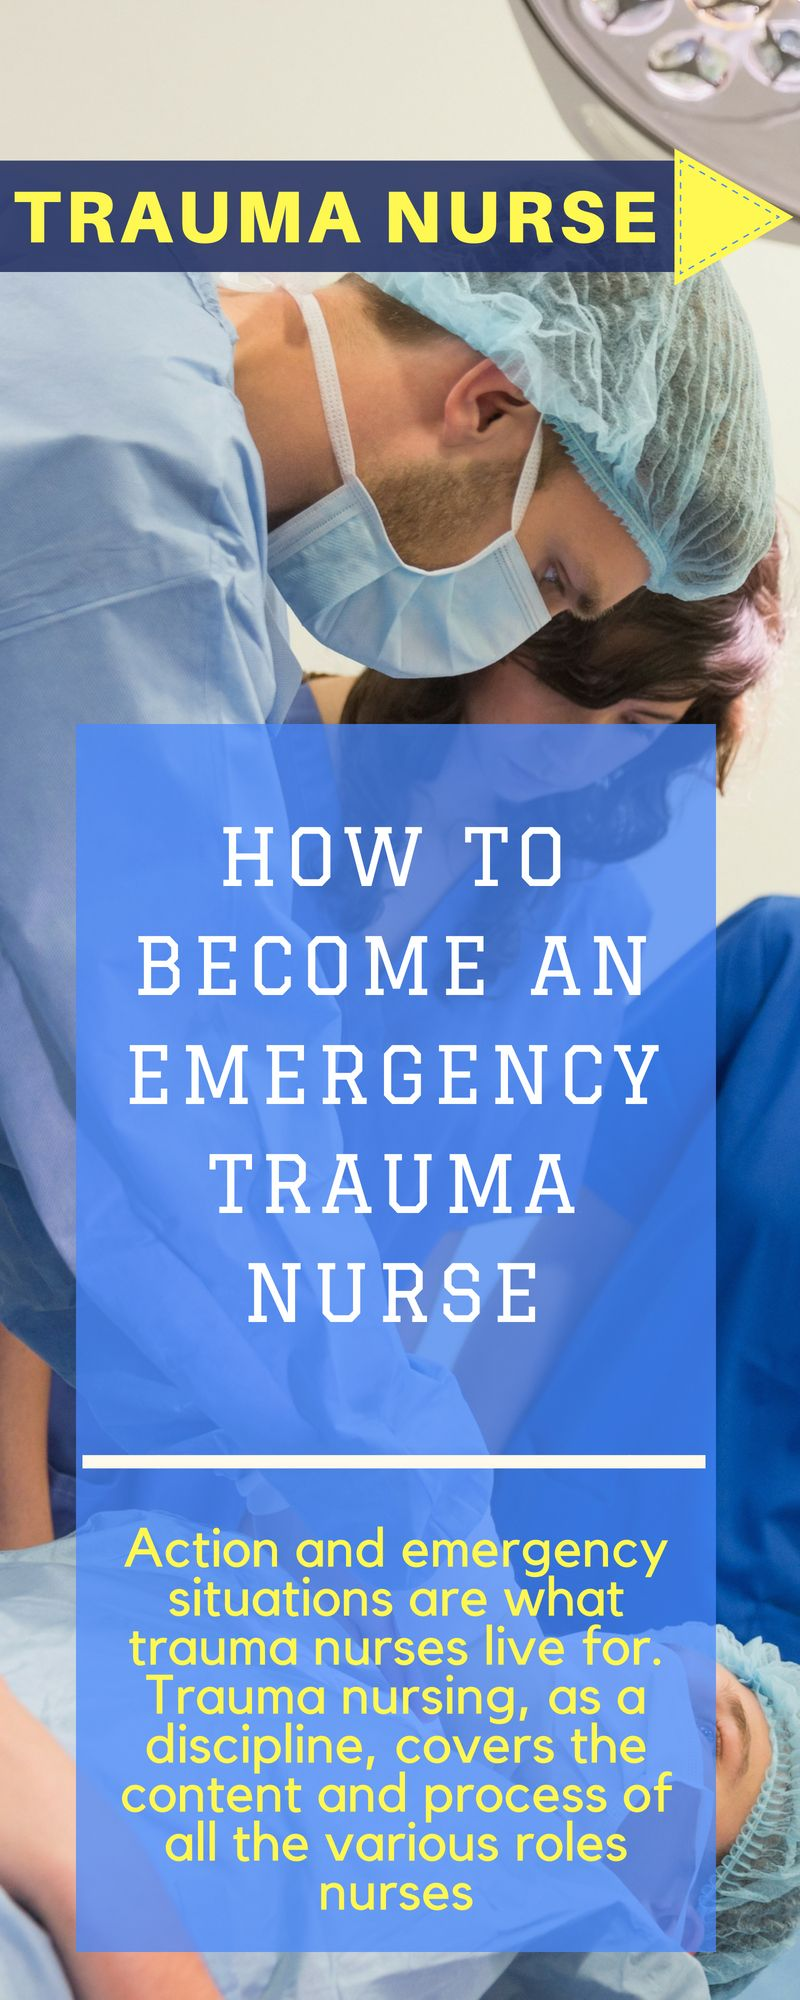 Trauma Nurse Education Salary Job Description Job Requirements